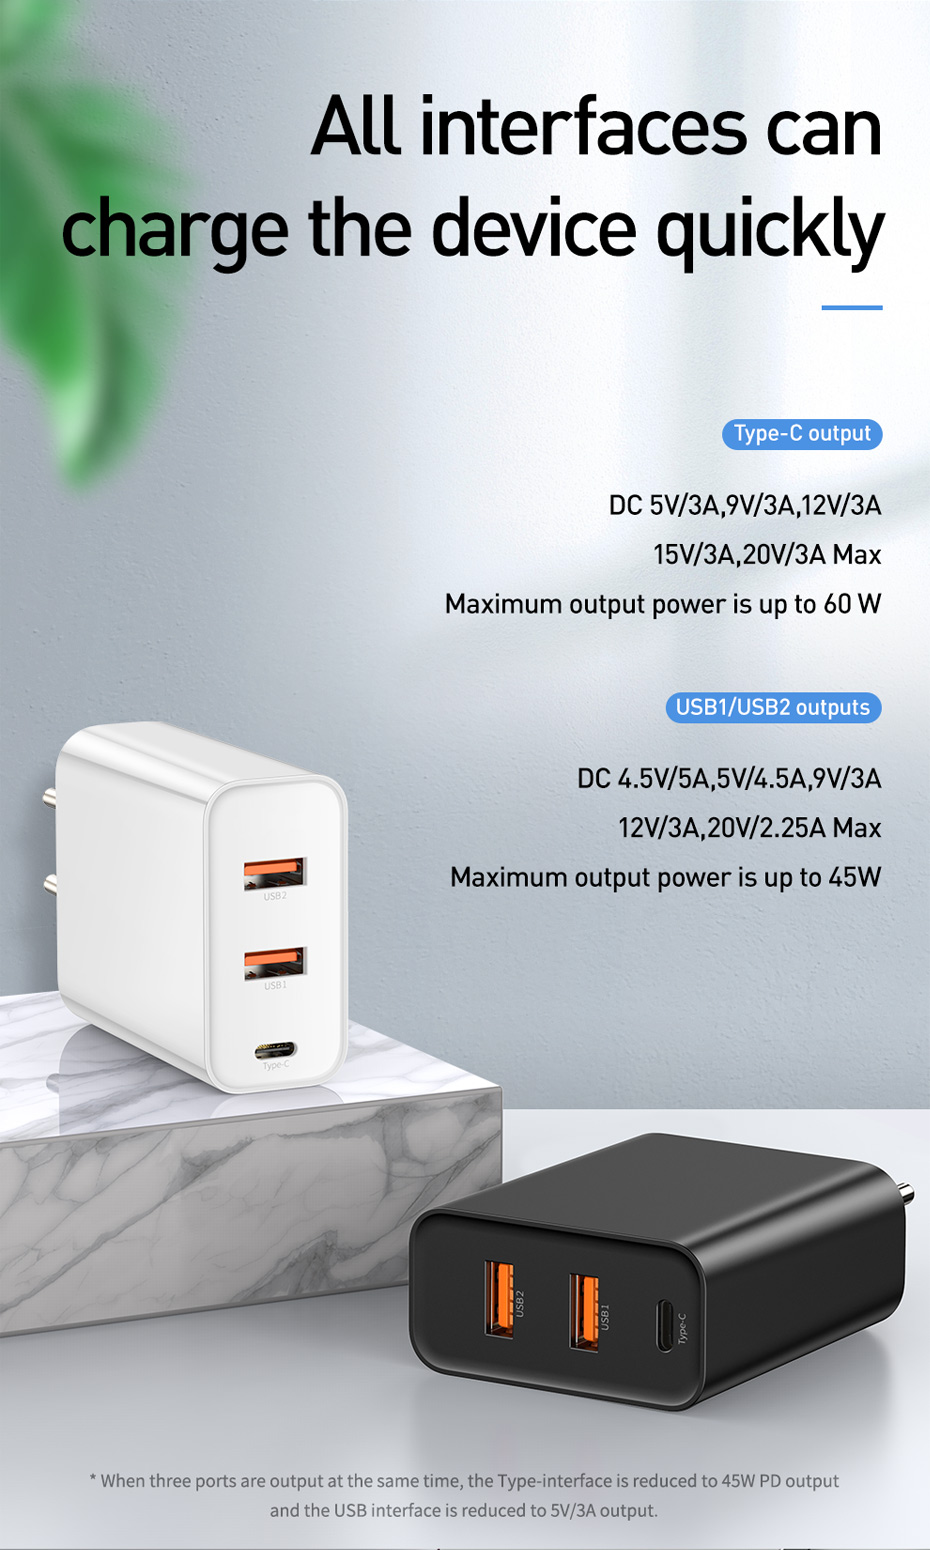 Baseus 3 Ports Usb Charger With Pd3 0 Fast Charger For Iphone 11 Pro Max Xr 60w Quick Charge 4 0 Fcp Scp For Redmi Note 7 X Charger Adapter Usb Chargers Xiaomi